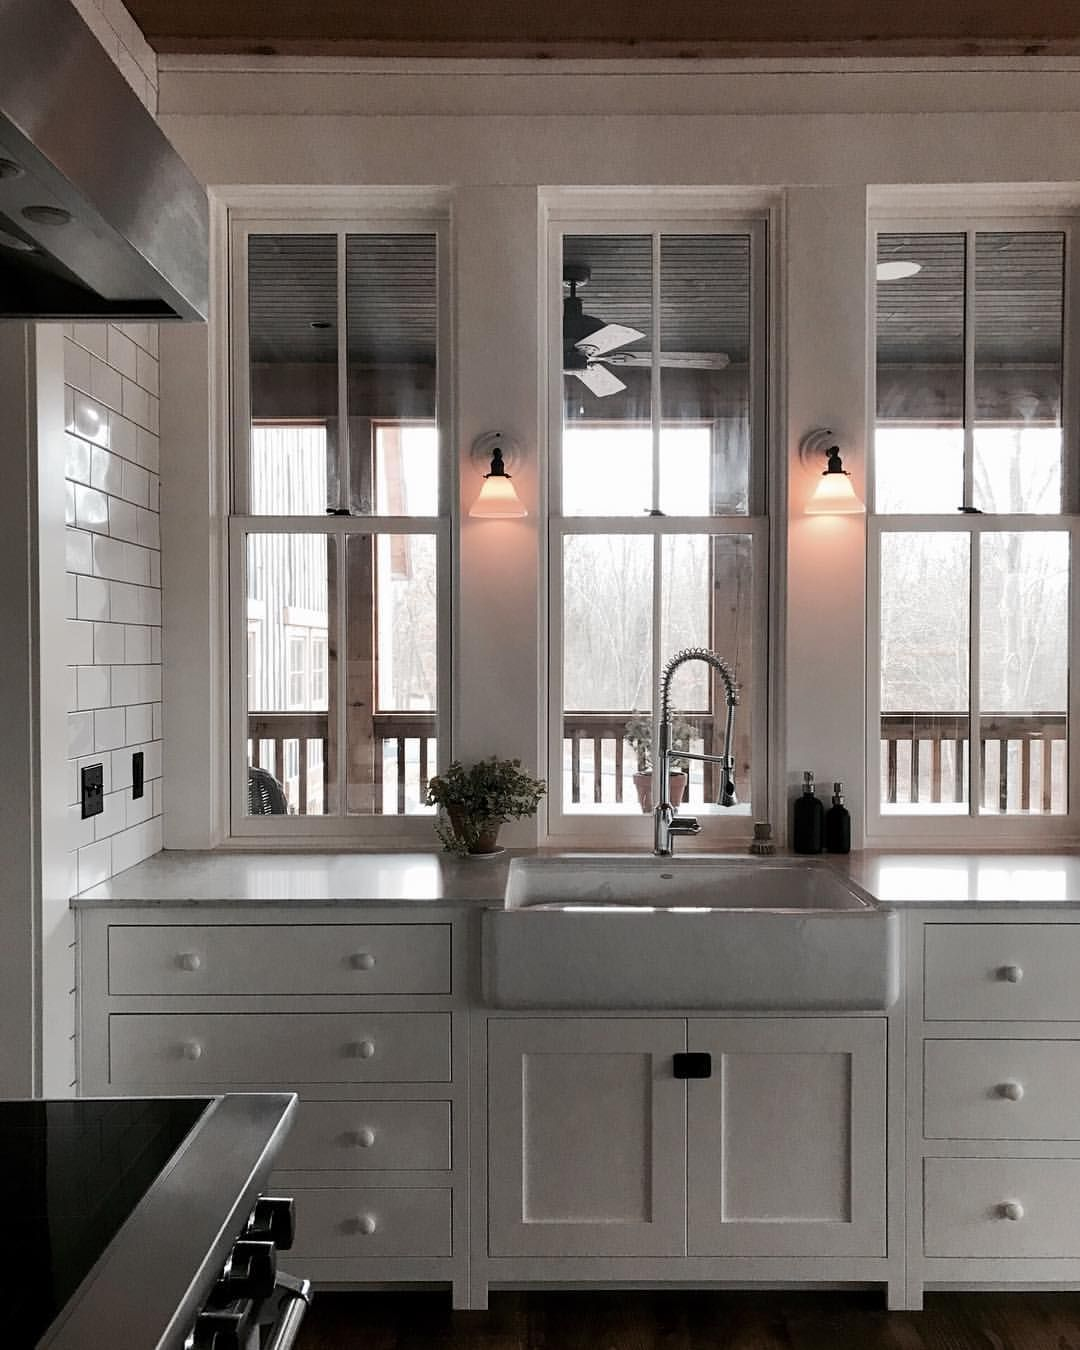 Hahka Happy Cottage Kitchen: Pin By Kathleen McIver On Sinks